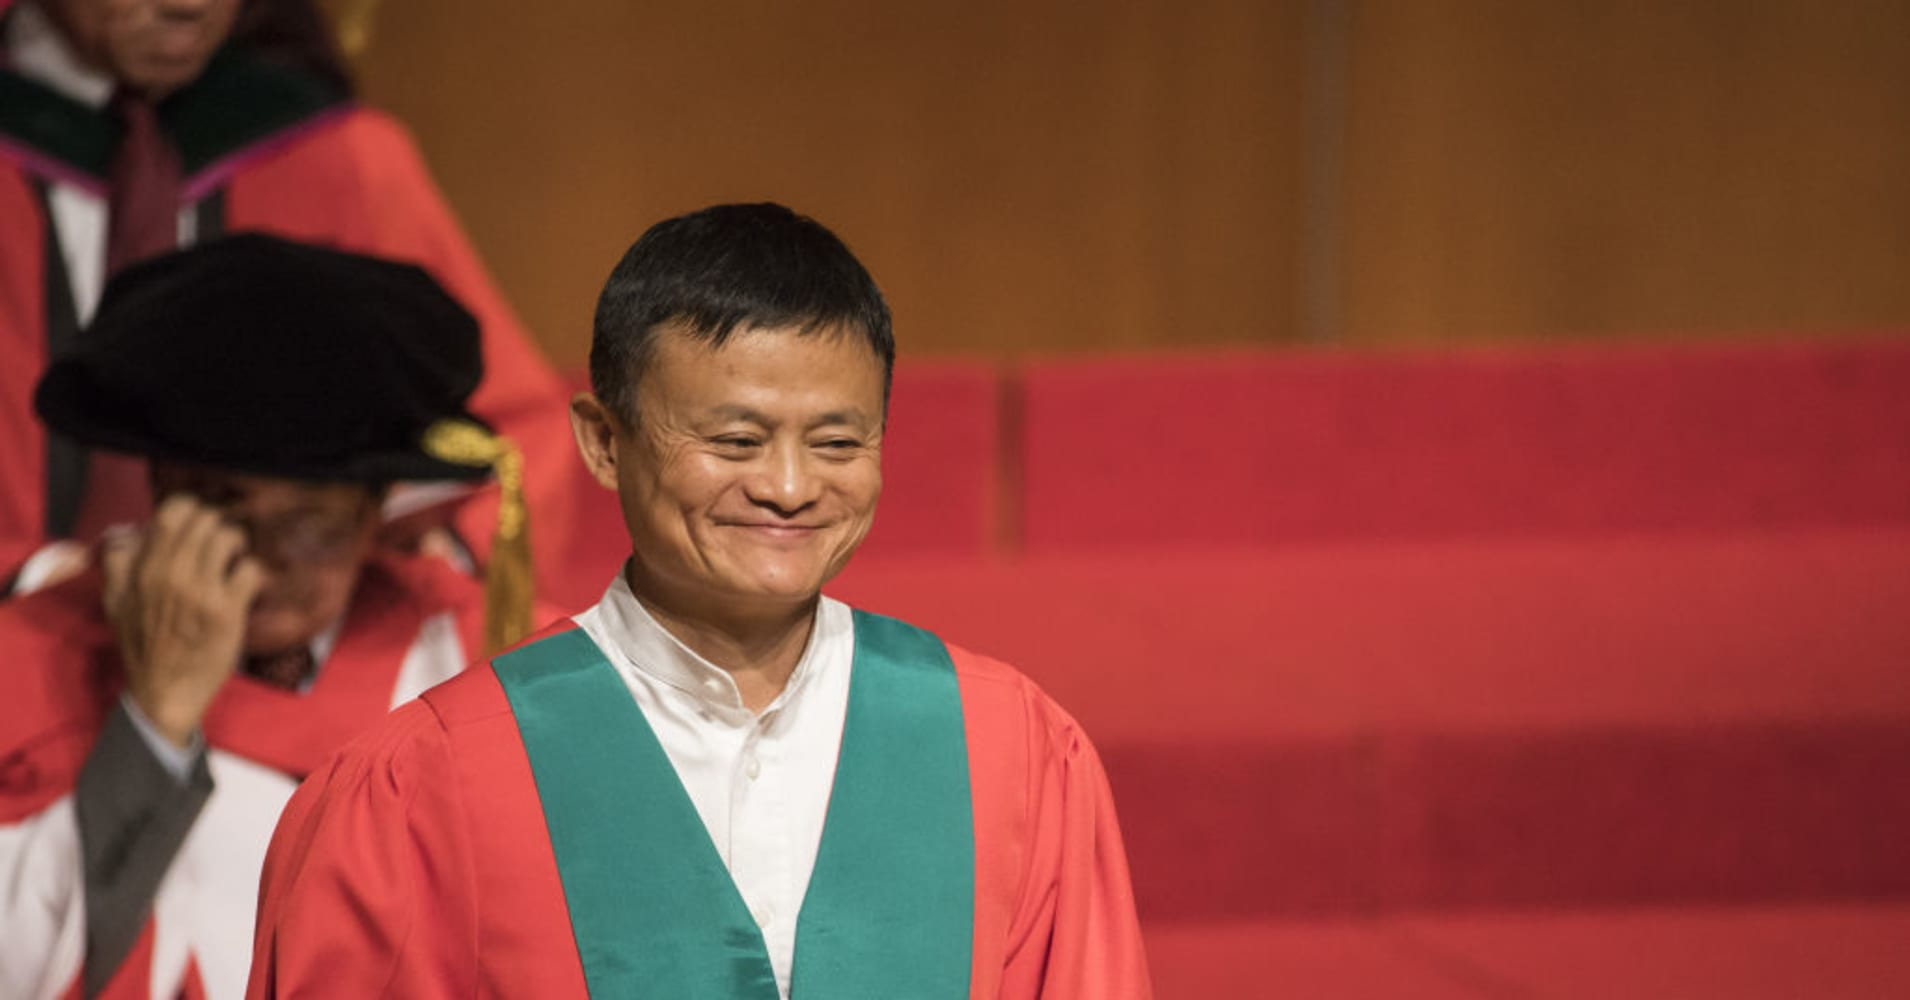 Jack Ma, executive chairman of Alibaba Group Holding Ltd., receives an honorary degree from the University of Hong Kong